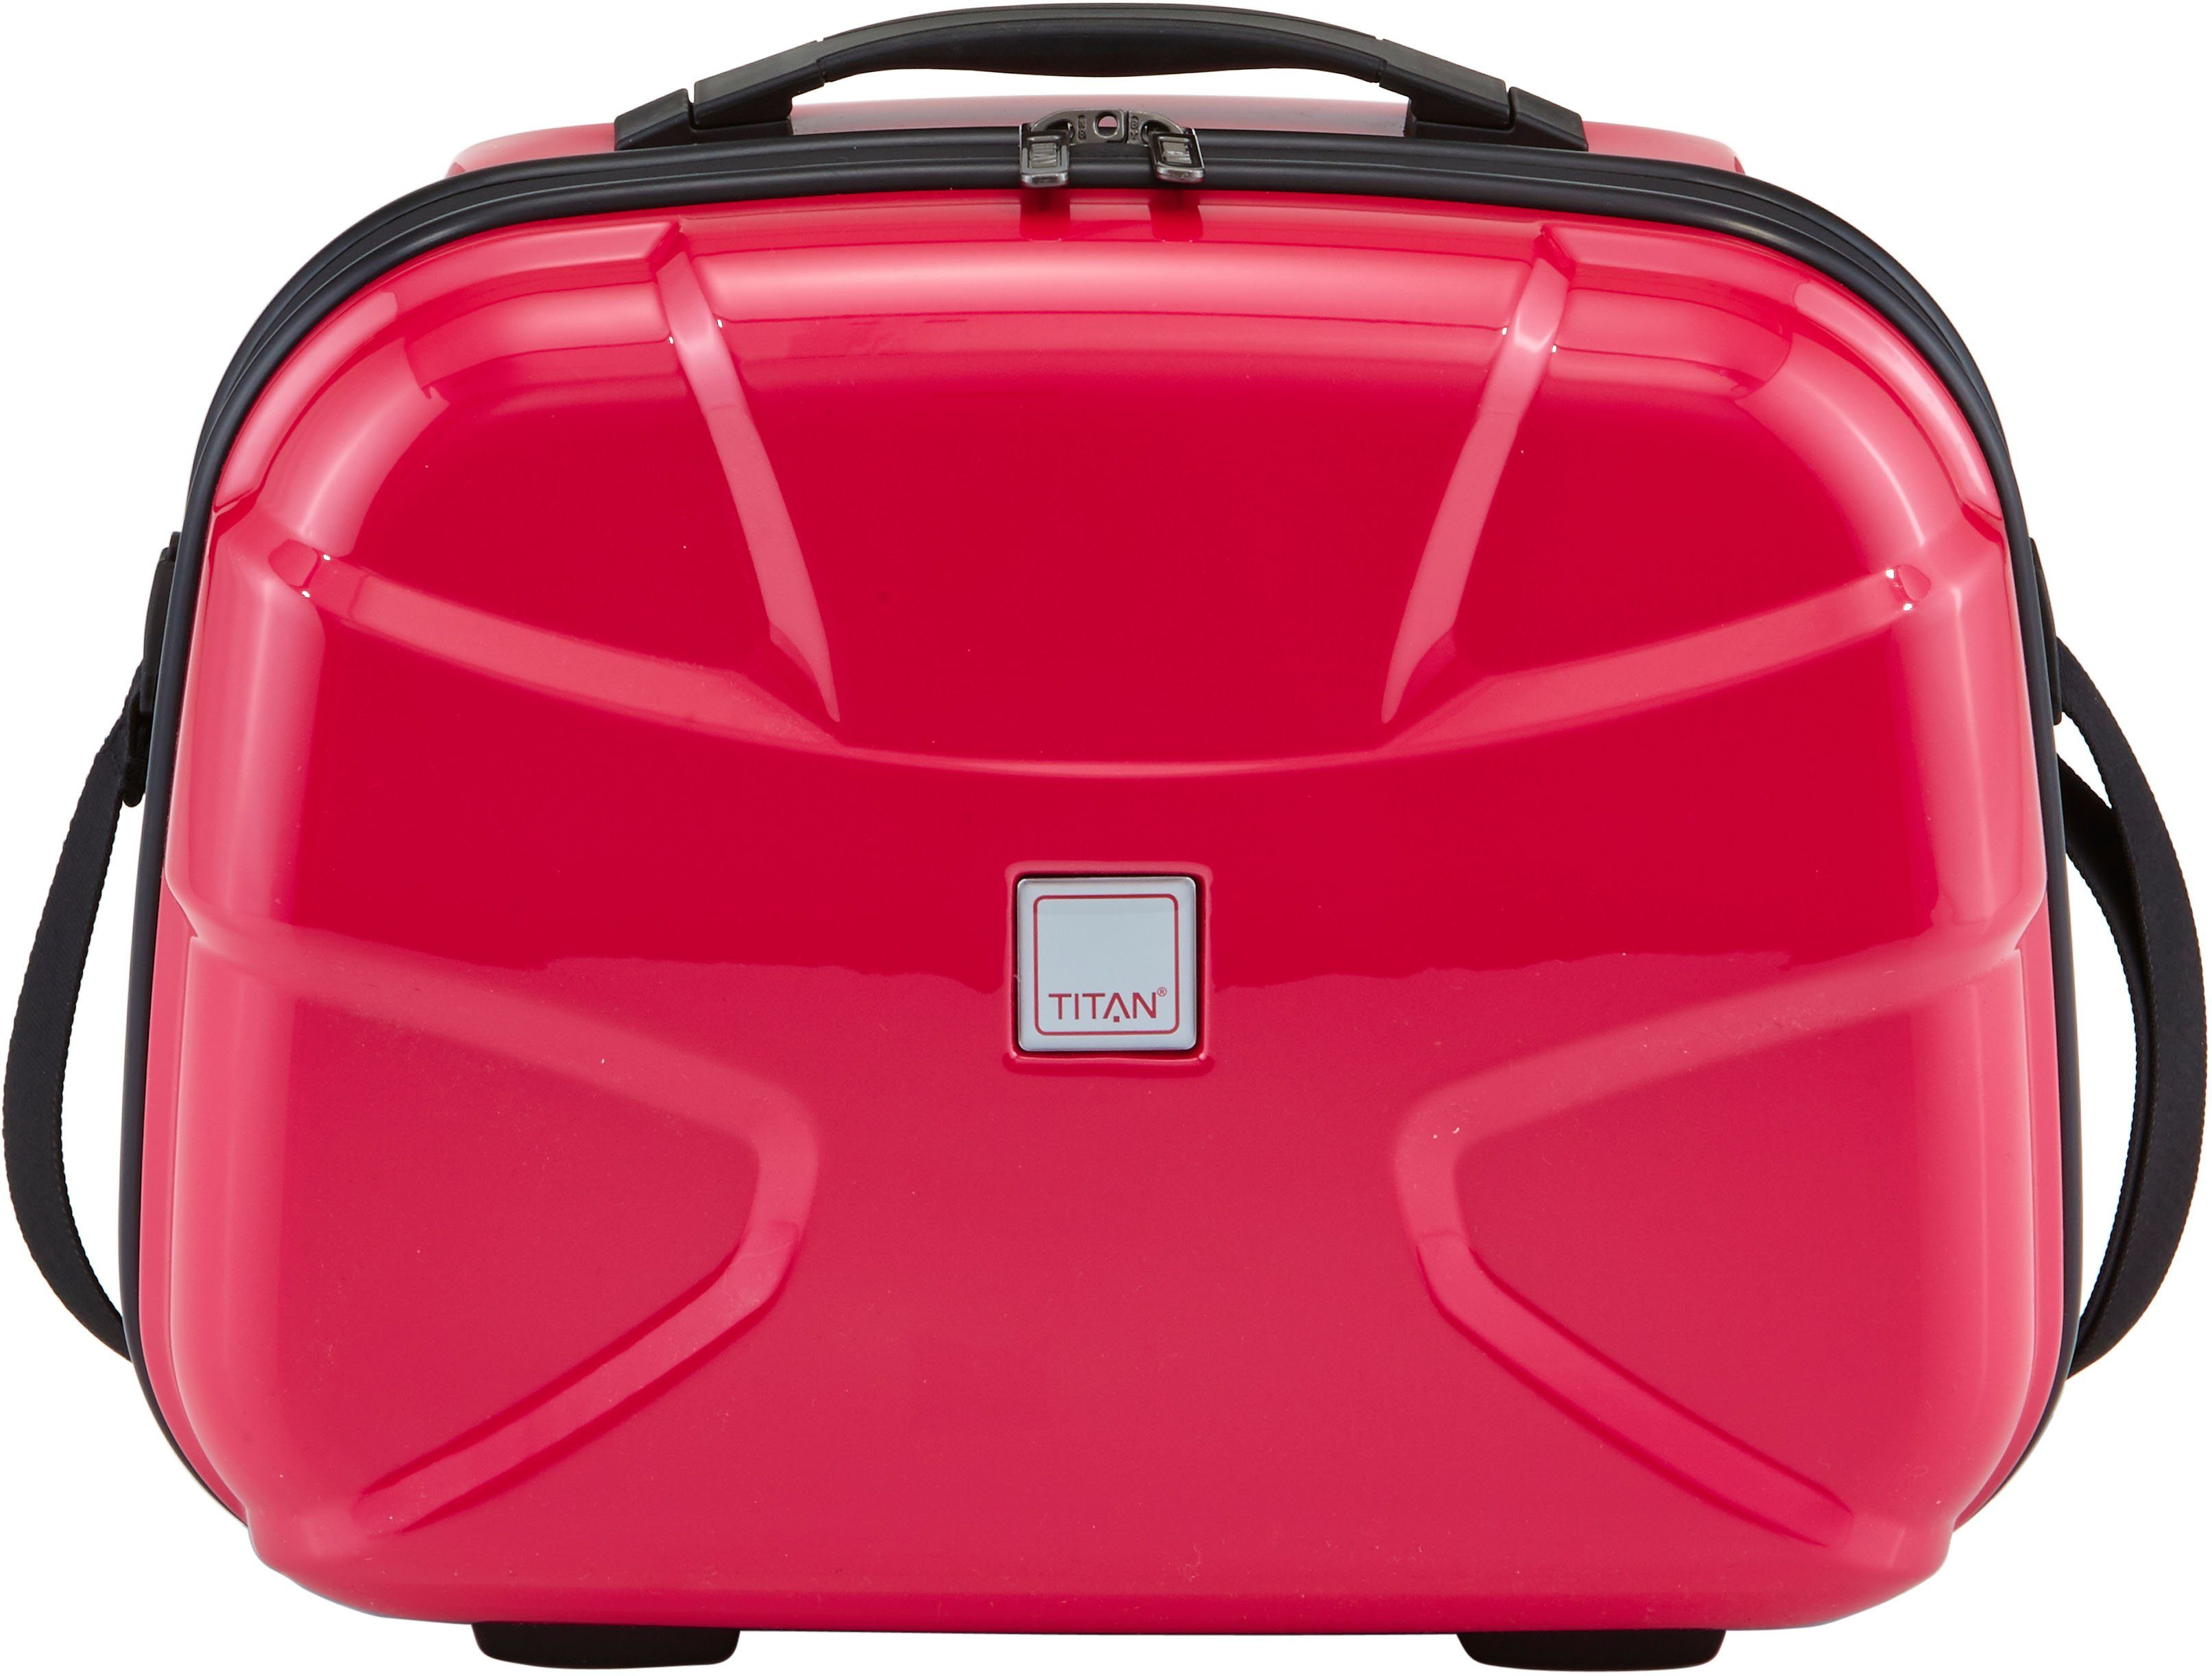 TITAN® Beautycase mit Flash Oberfläche, »X2, fresh pink«